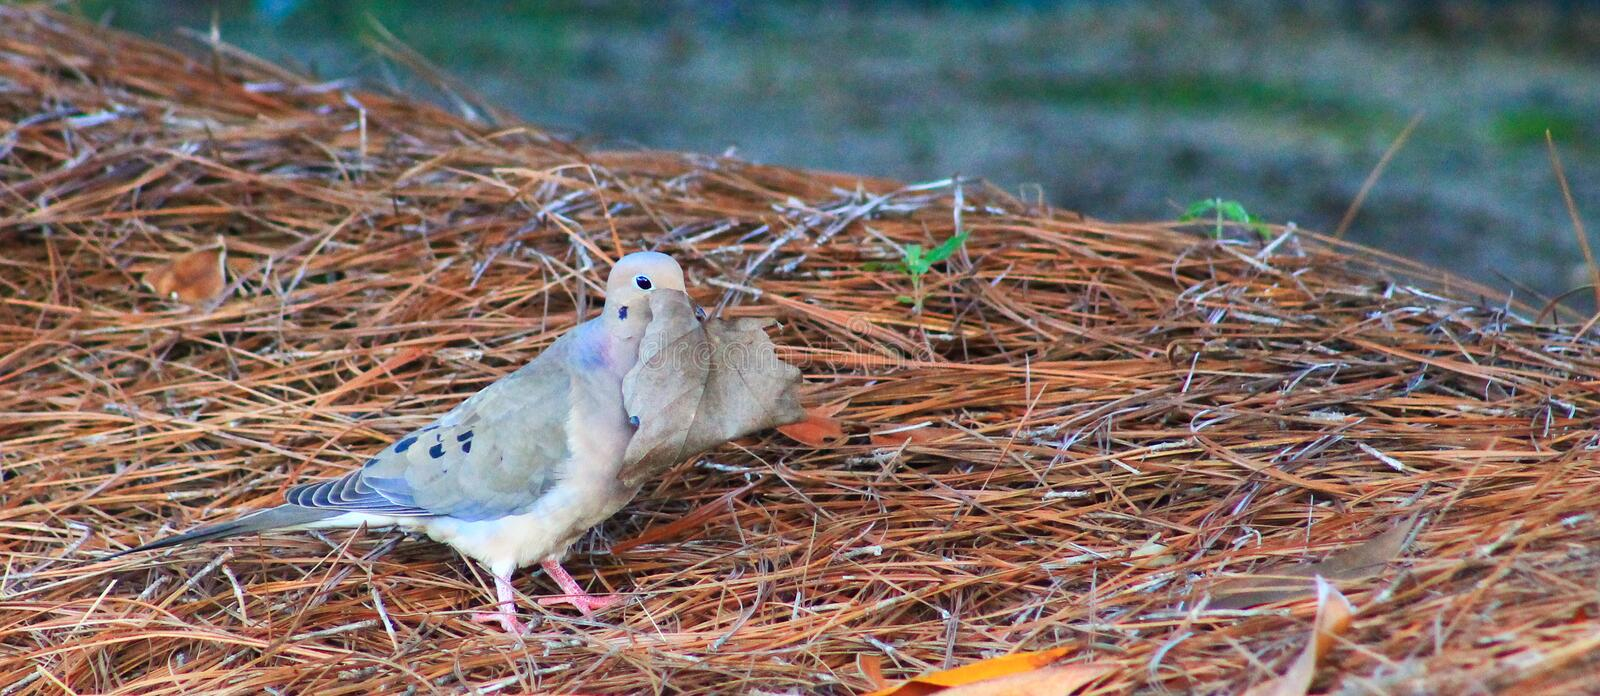 Avoiding Paparazzi. Mourning Dove on the ground with a large leaf in front of head like he is dodging paparazzi royalty free stock photo